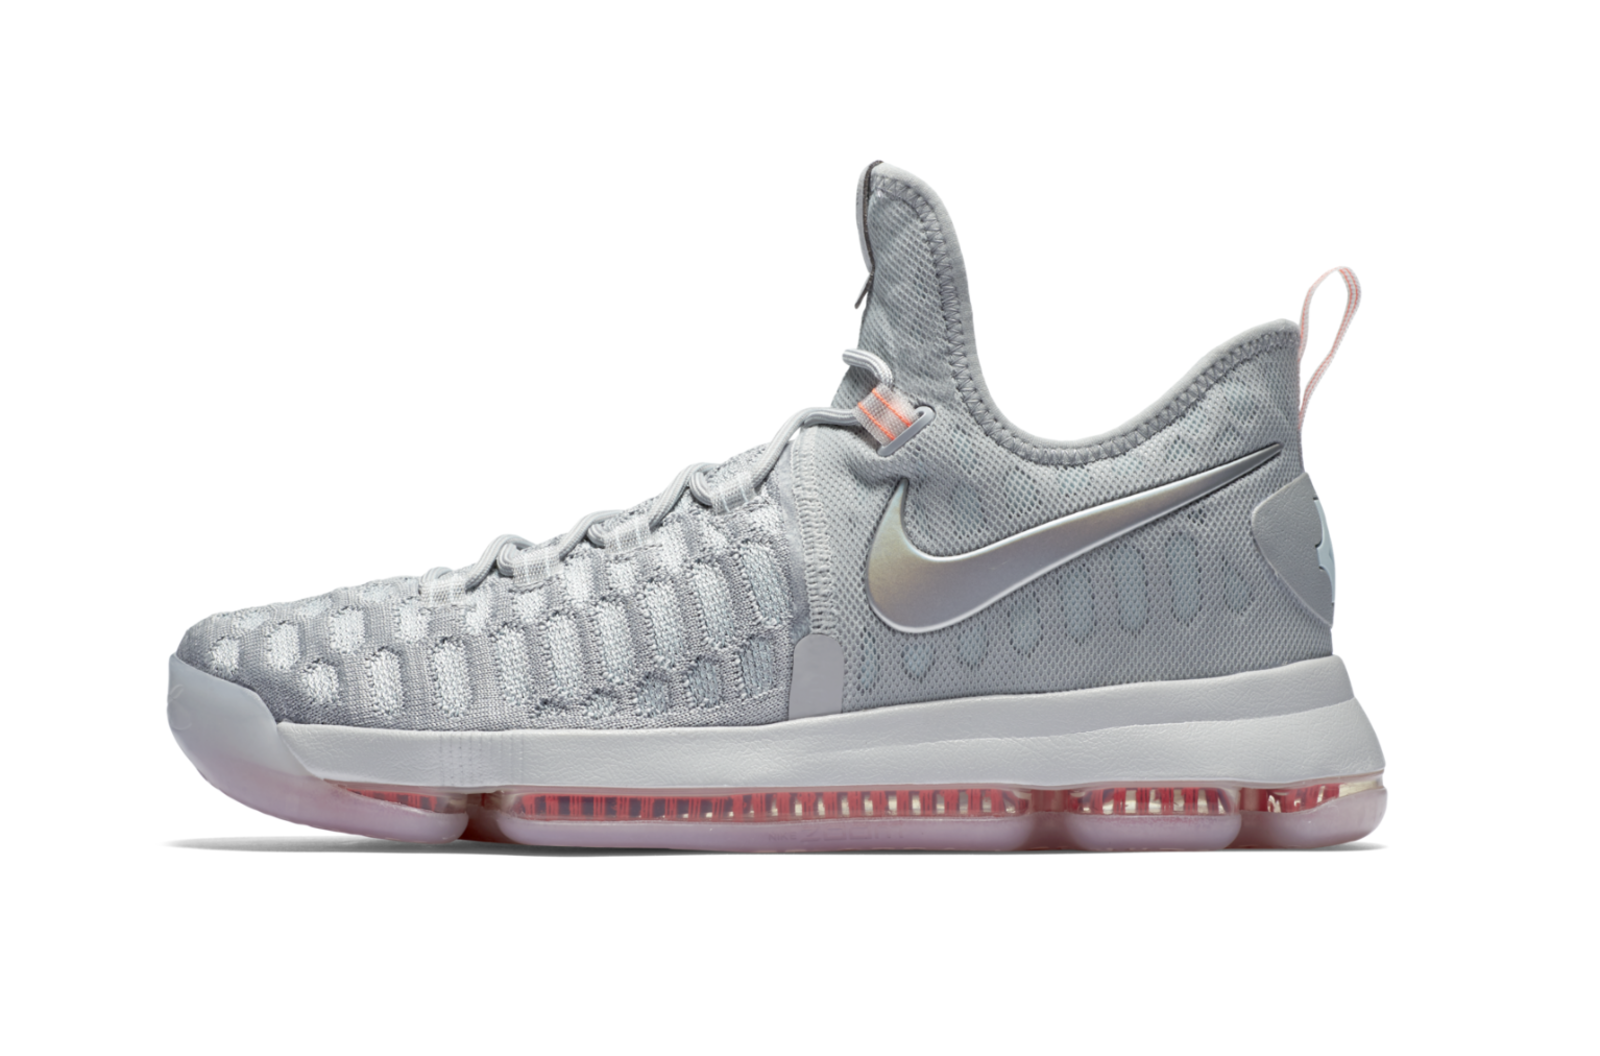 bf22c12d1749 Kevin Durant s Game-Changing KD9 Shoe - Nike News